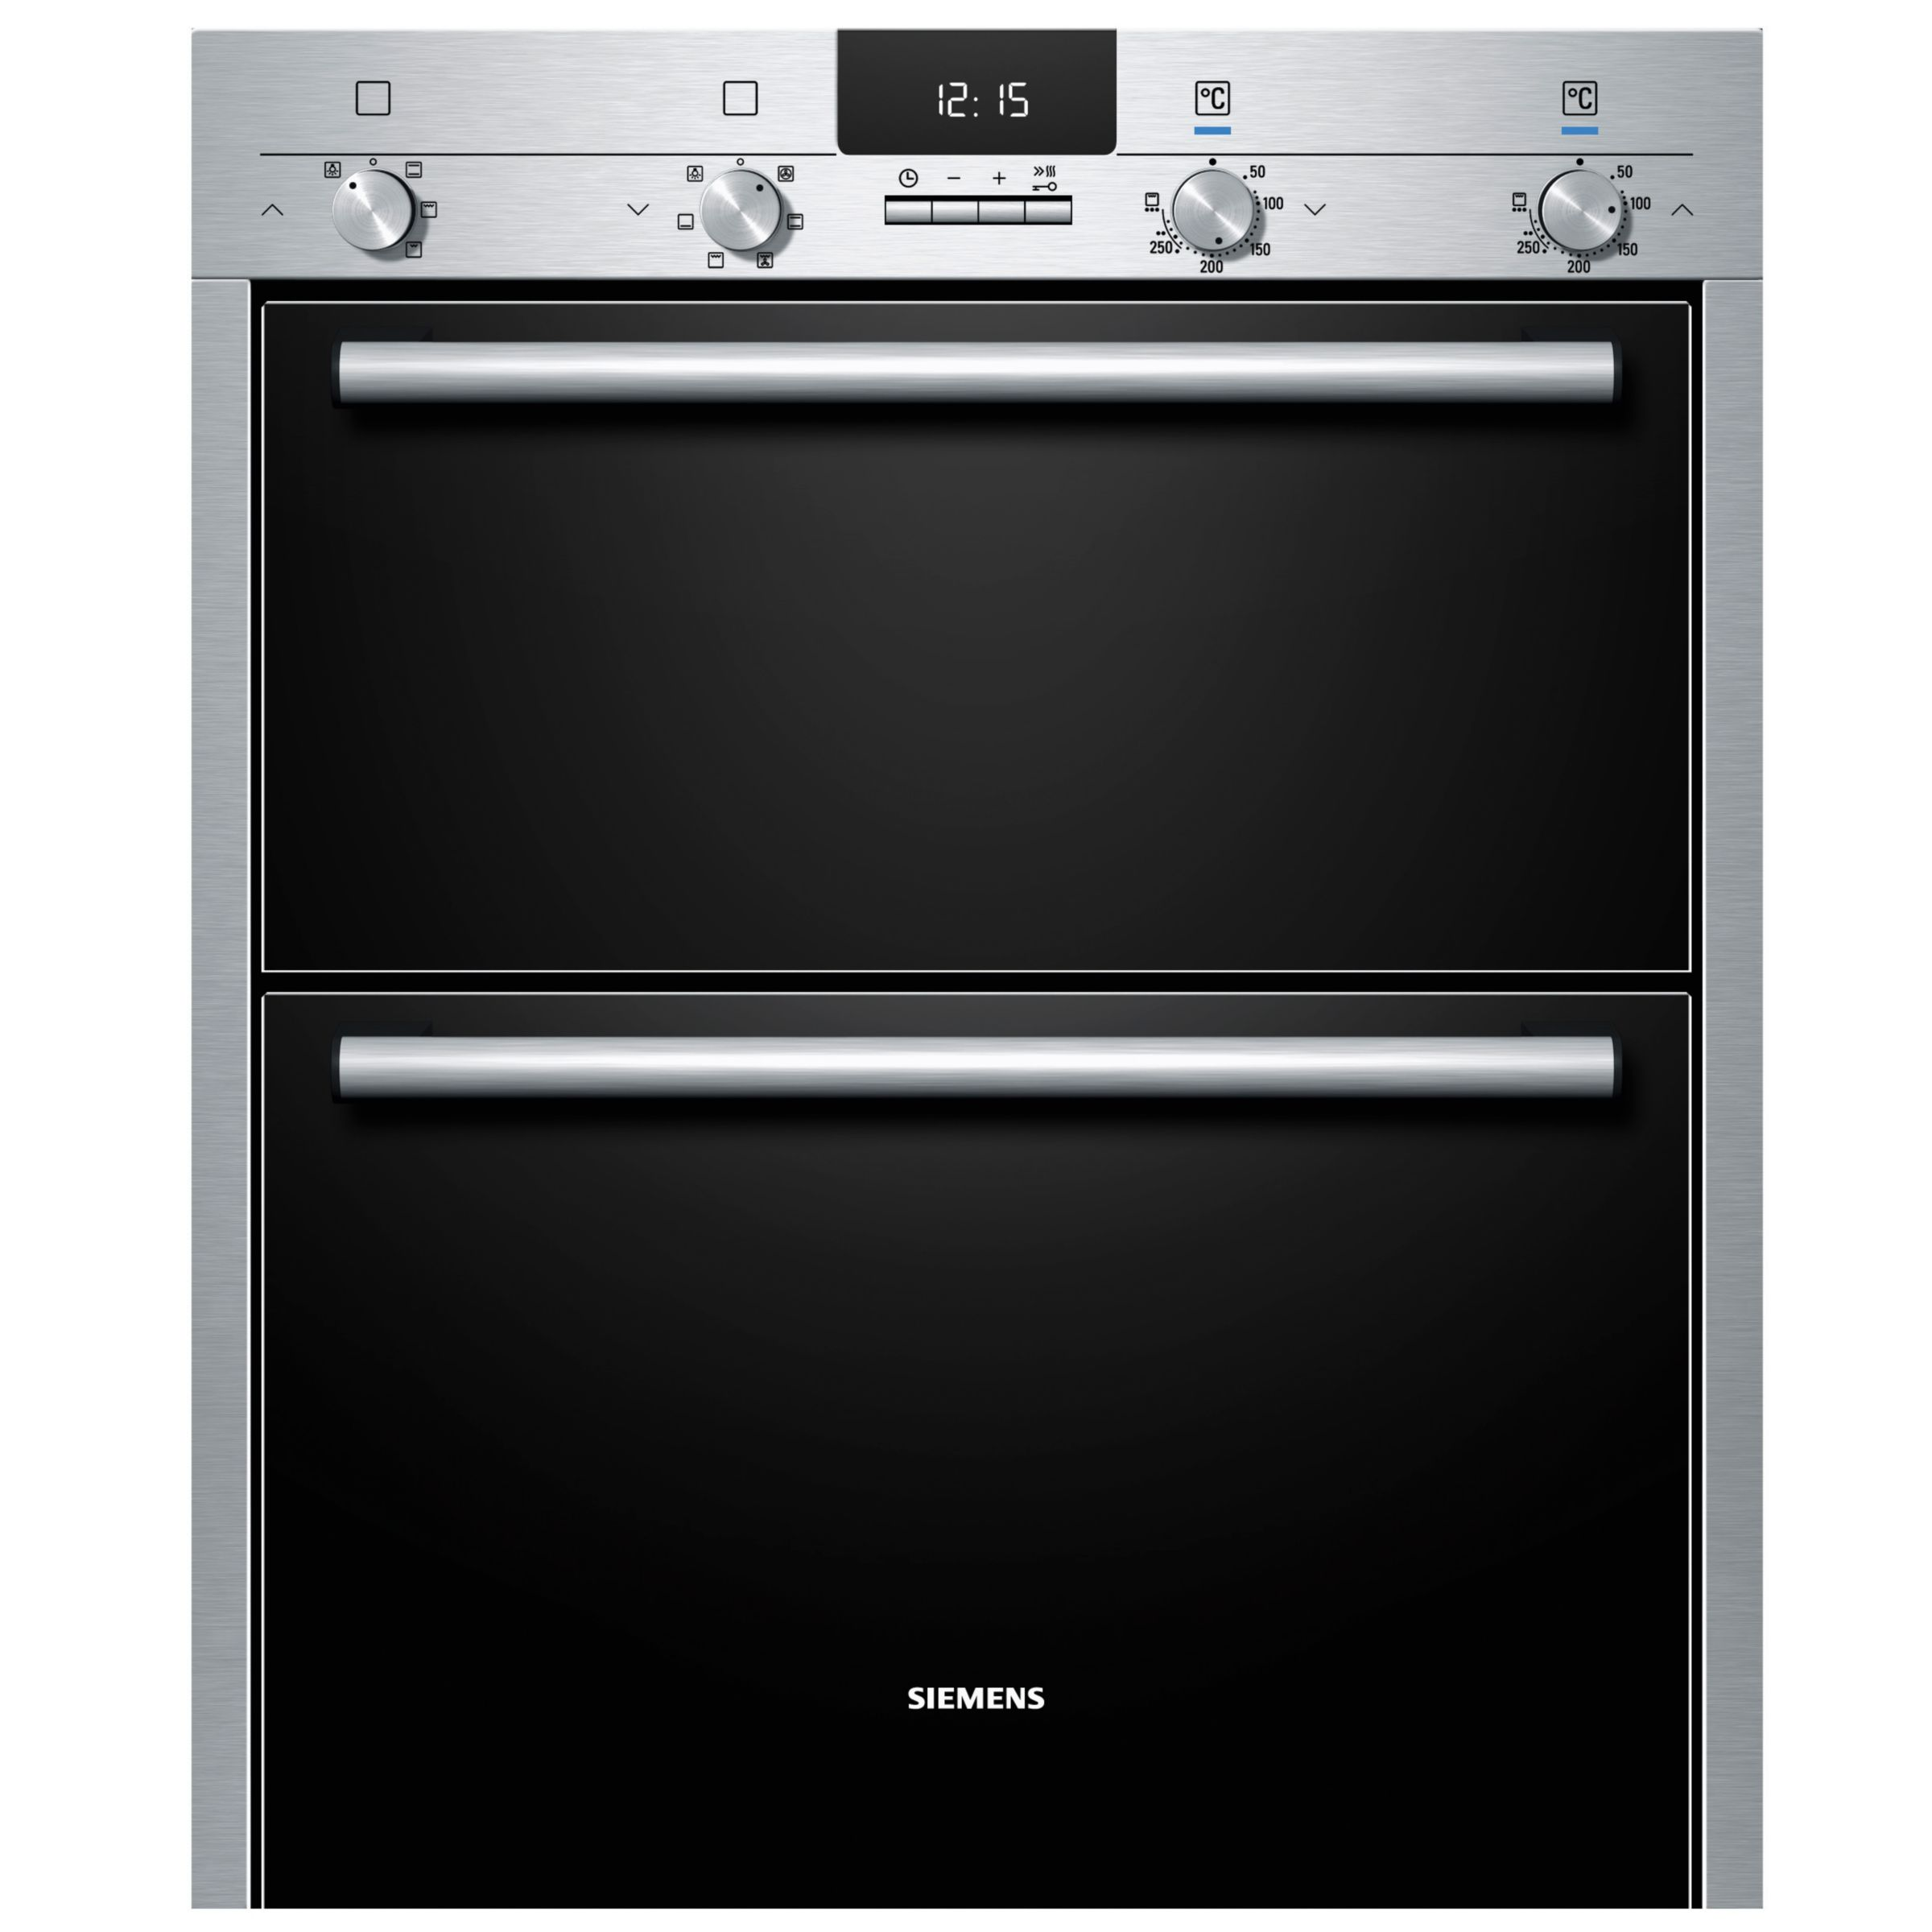 Siemens HB43NB520B Double Electric Oven, Stainless Steel at John Lewis